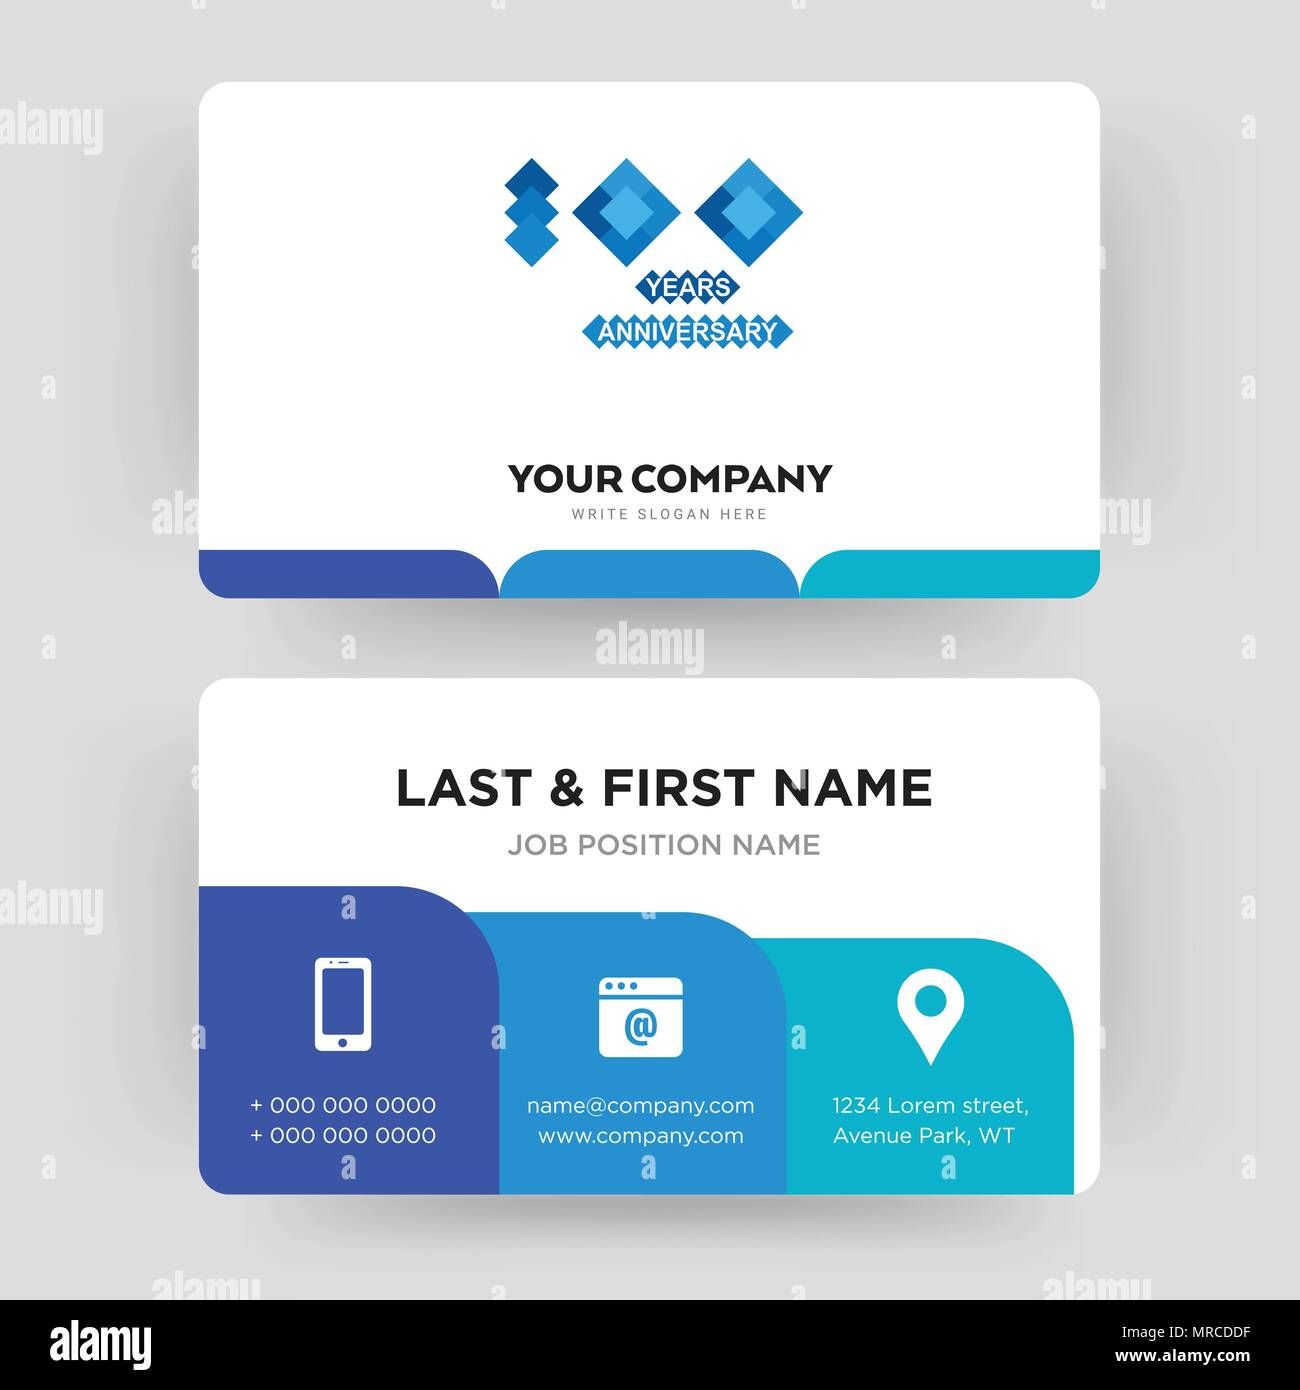 100 Year Anniversary Business Card Design Template